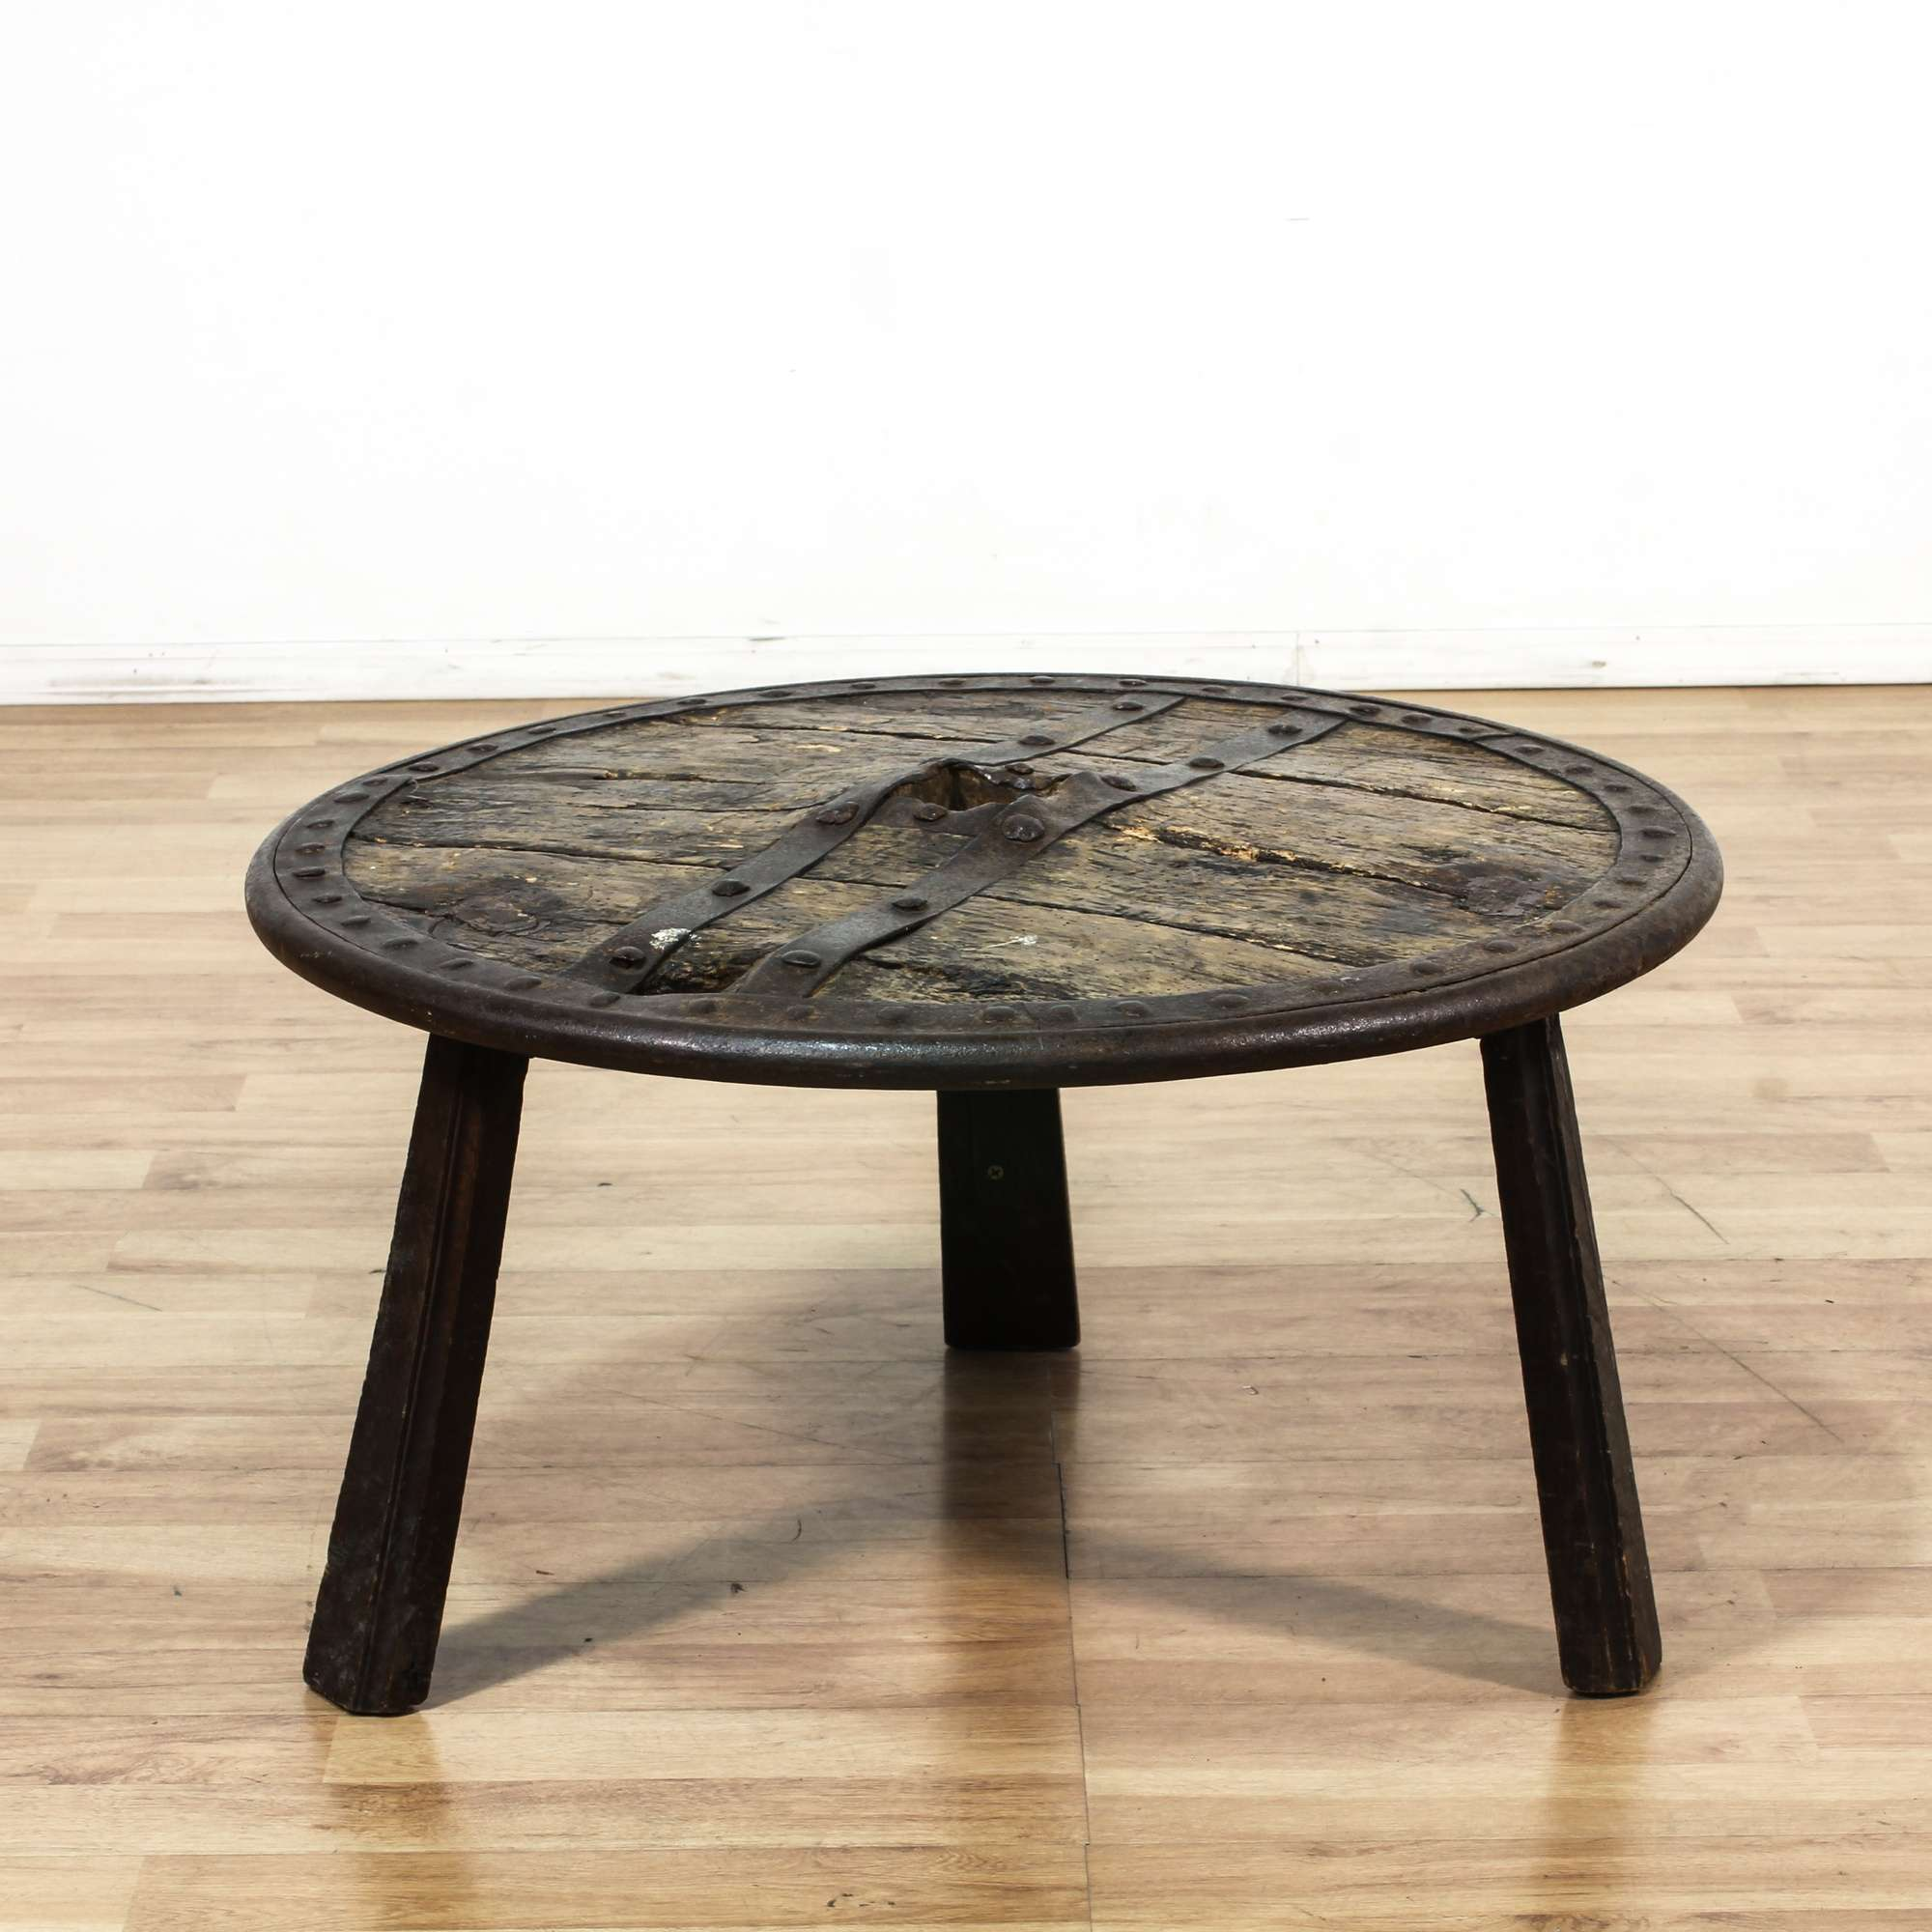 Primitive rustic round shield coffee table loveseat vintage primitive rustic round shield coffee table loveseat vintage furniture los angeles geotapseo Image collections